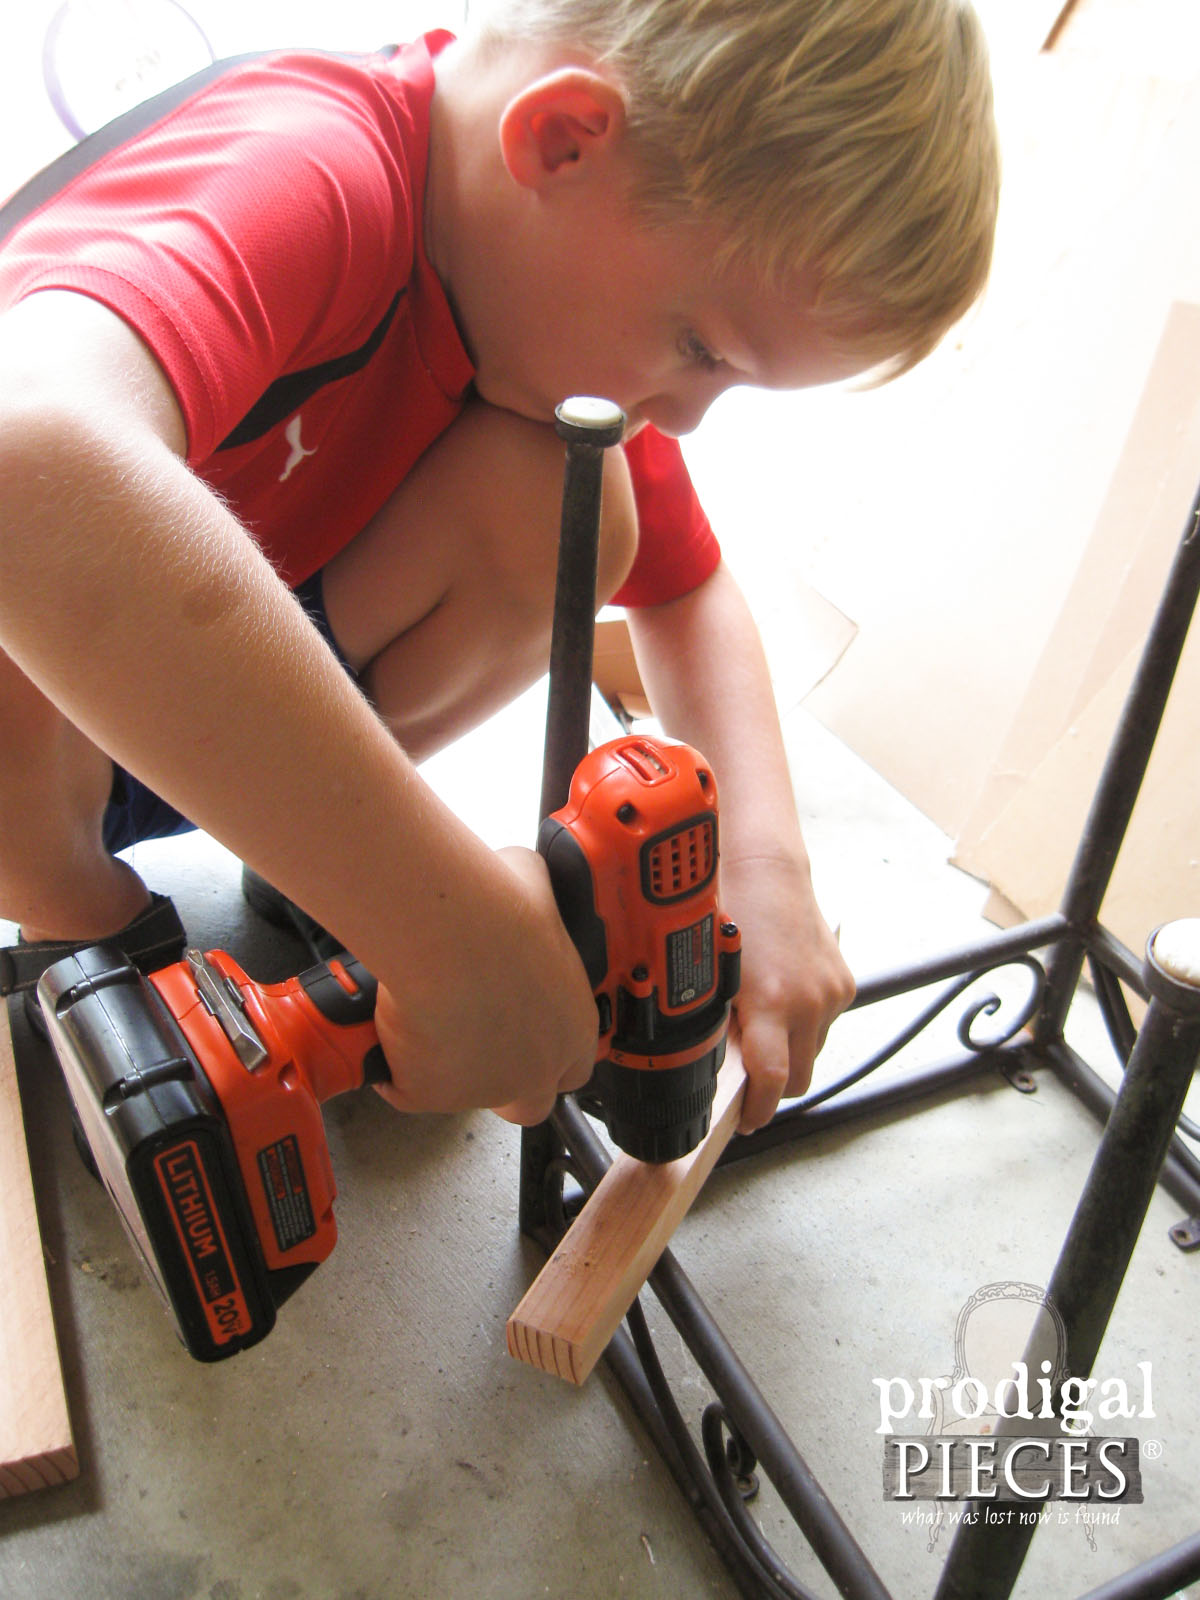 Boy Drilling New Wood for Outdoor Table | Prodigal Pieces | www.prodigalpieces.com